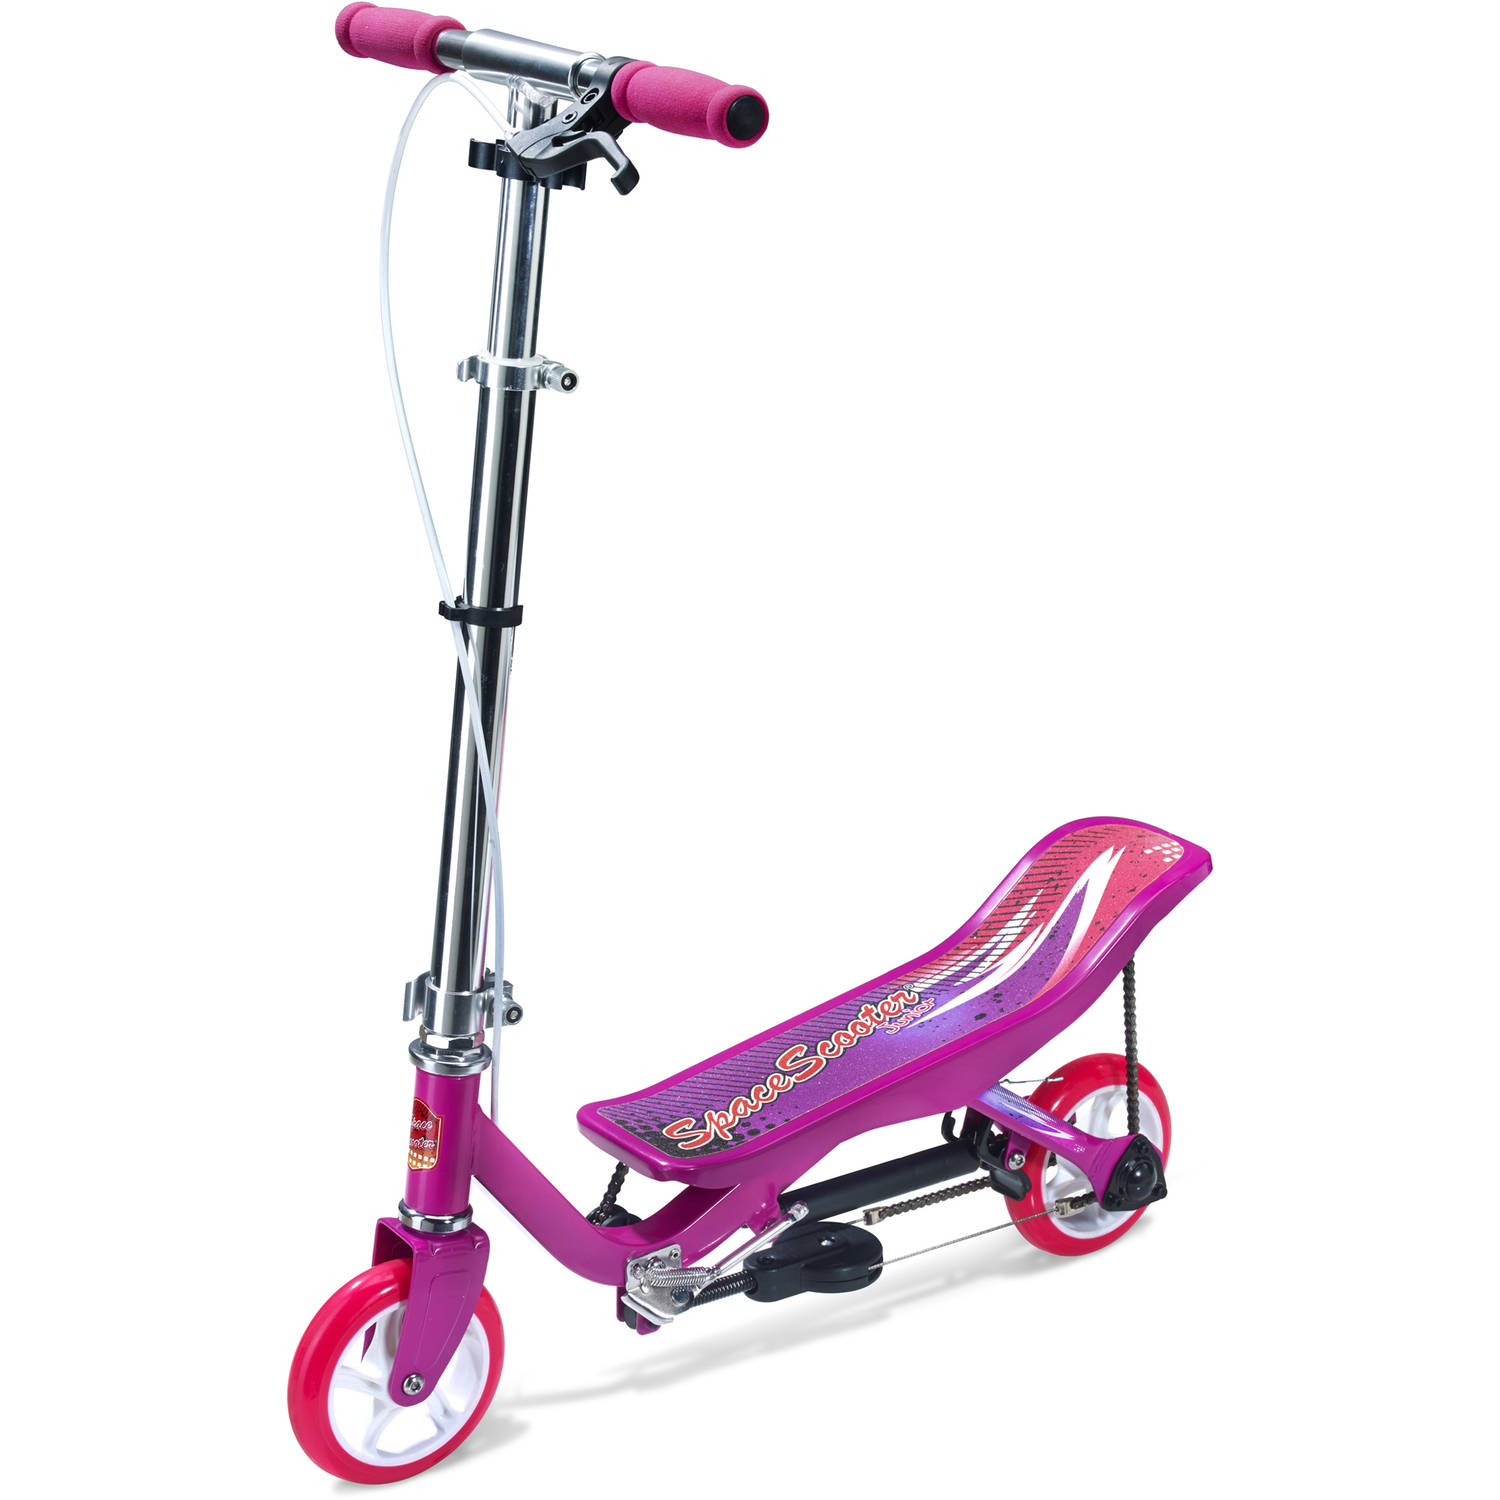 Space Scooter X360, Junior, Pink by Space Scooter